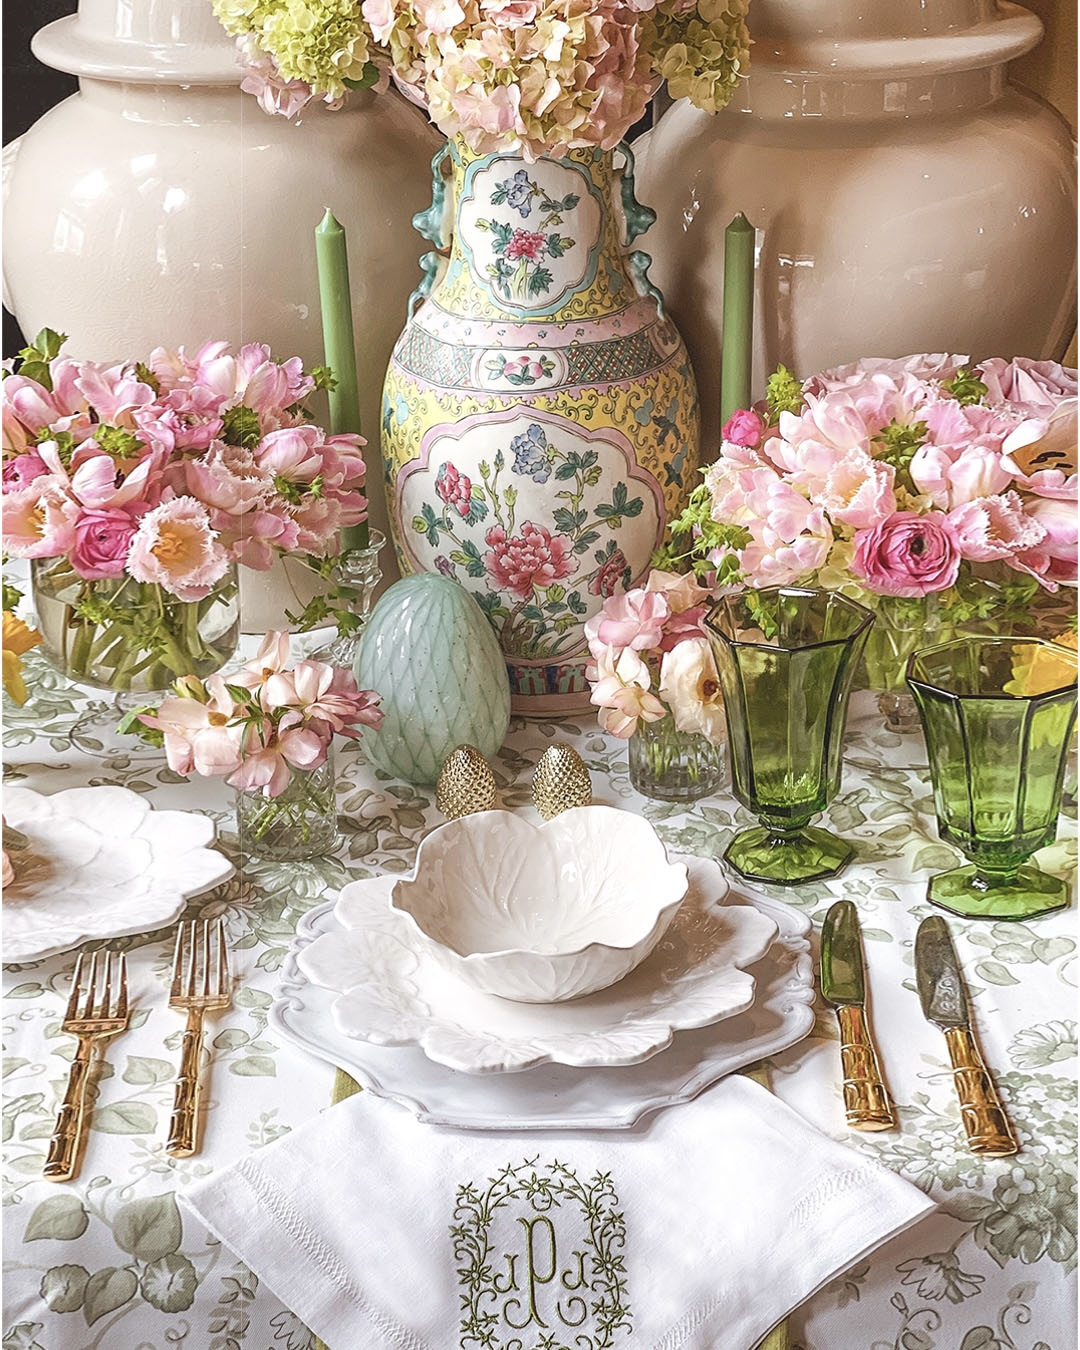 Easter Table with white cabbage plates